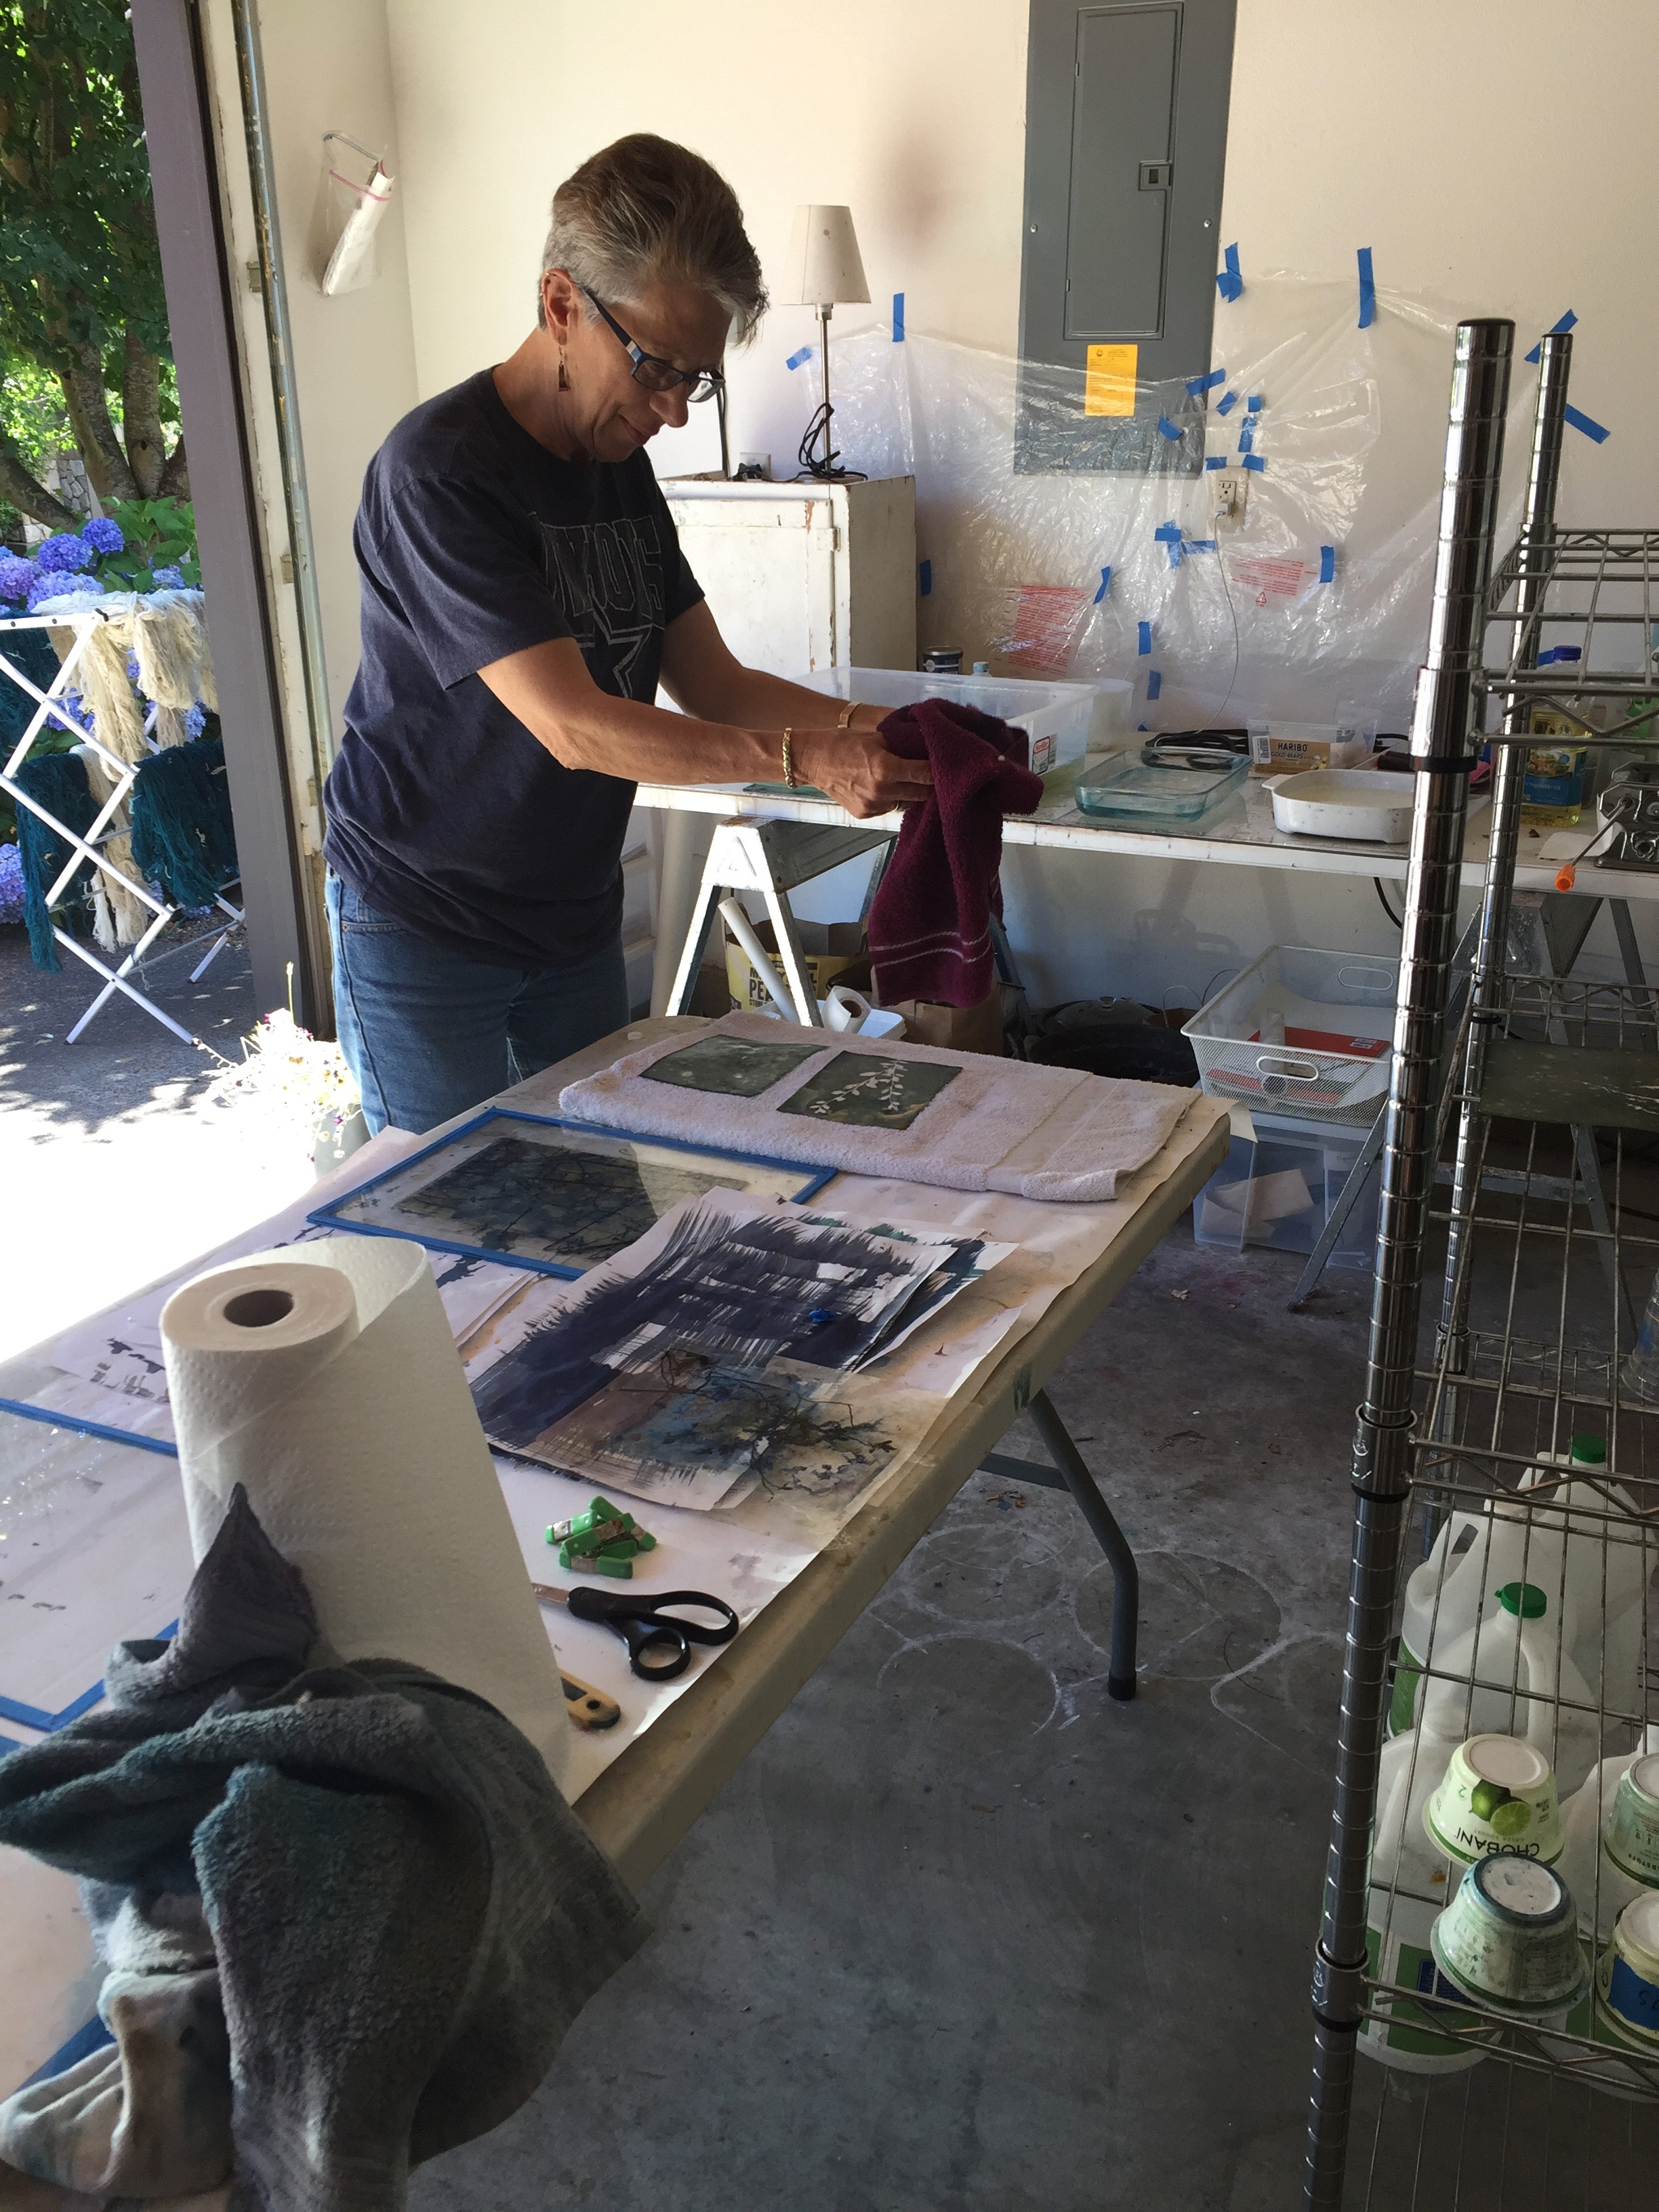 Blotting the cyanotypes fresh out of their bath